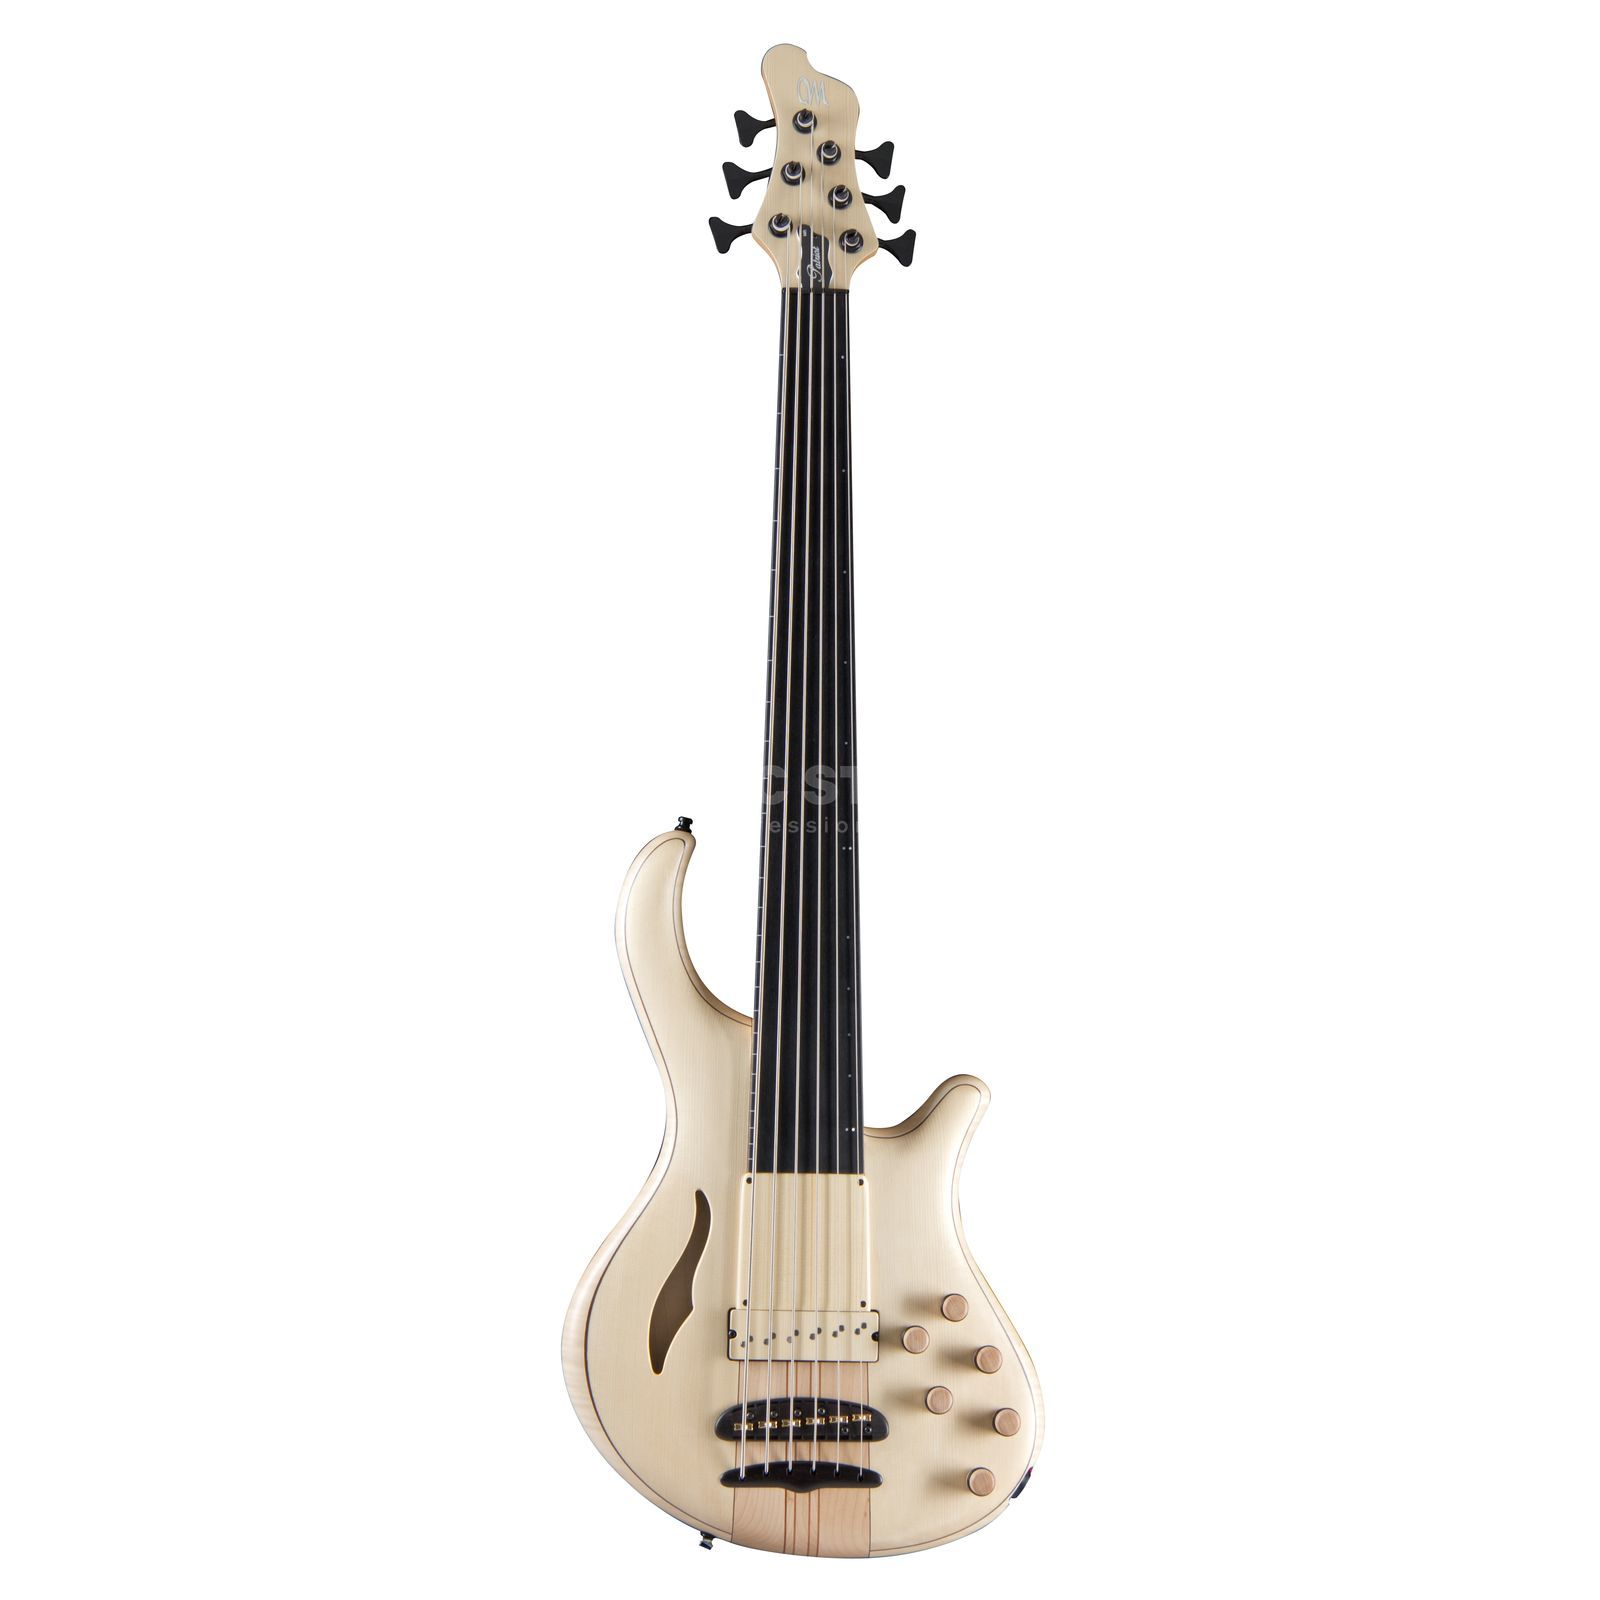 Mayones AS Patriot 6 MR Fretless NT CS Natural Imagen del producto